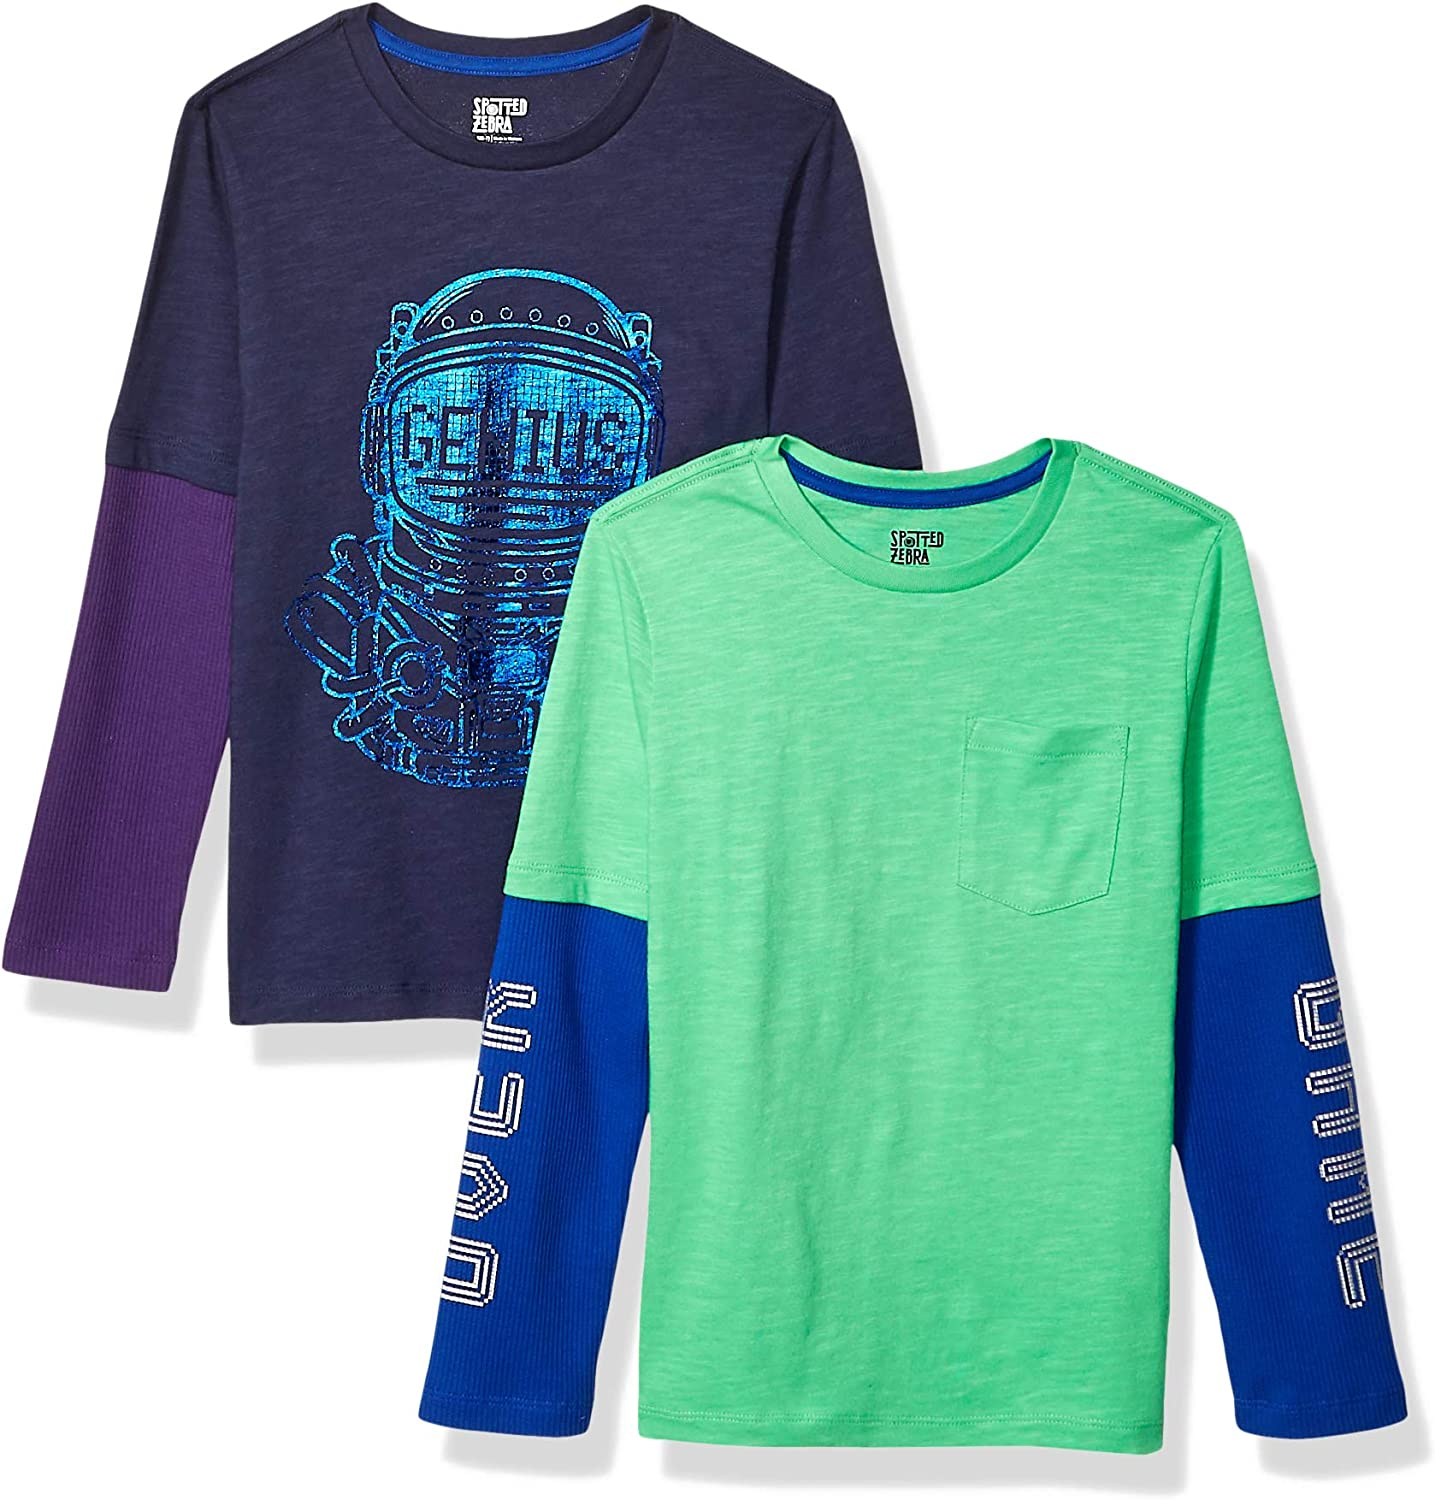 Spotted Zebra Boys Toddler /& Kids 2-Pack Long-Sleeve 2-in-1 T-Shirts Brand